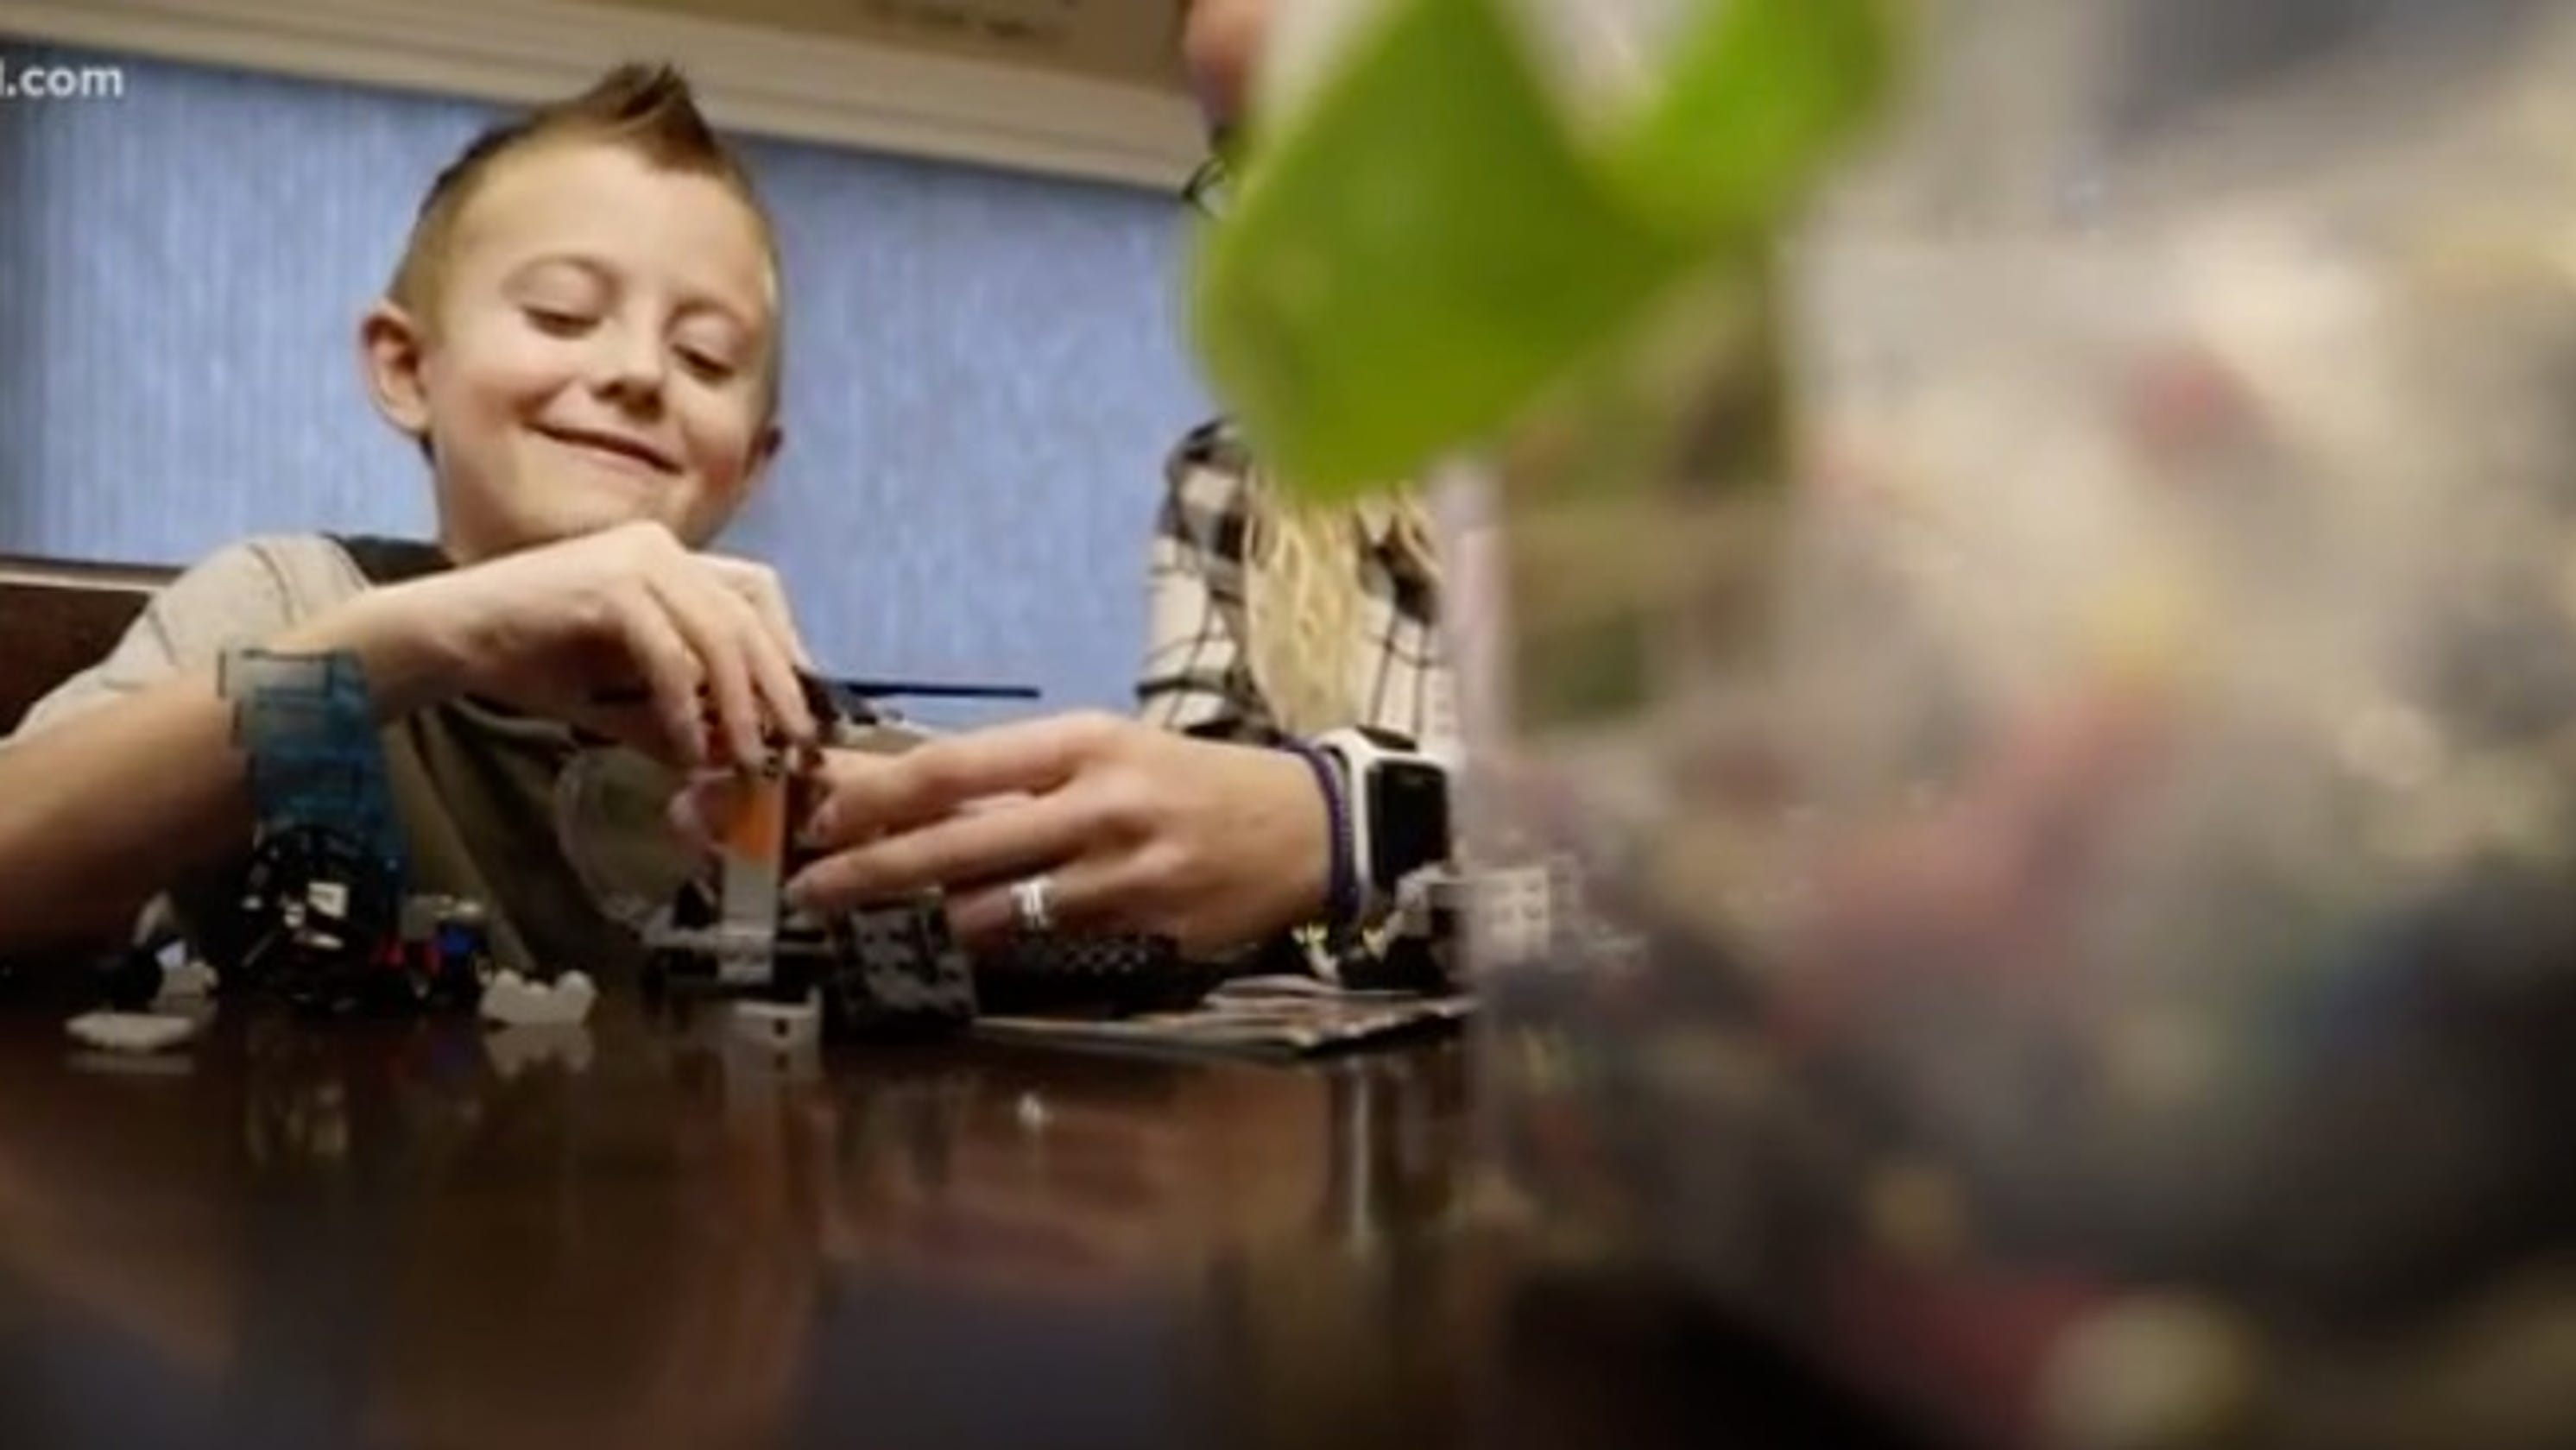 Rare, polio-like paralyzing disorder affecting children on the rise, CDC says thumbnail